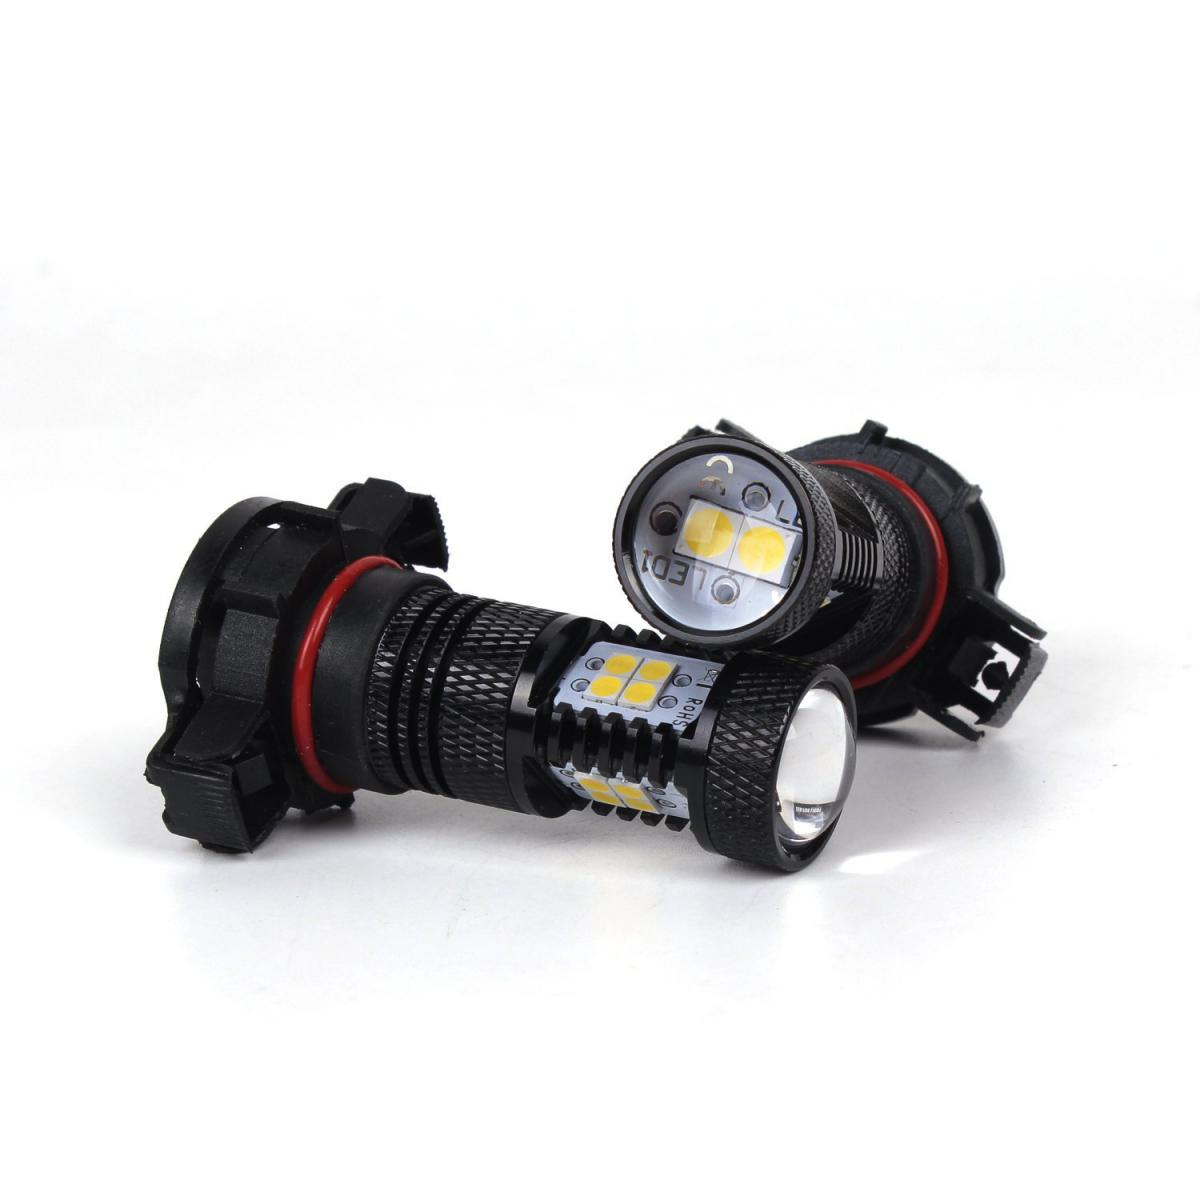 jdm astar 2x1500lm 5202 h16 super bright 3030 smd white led bulbs drl fog lights ebay. Black Bedroom Furniture Sets. Home Design Ideas